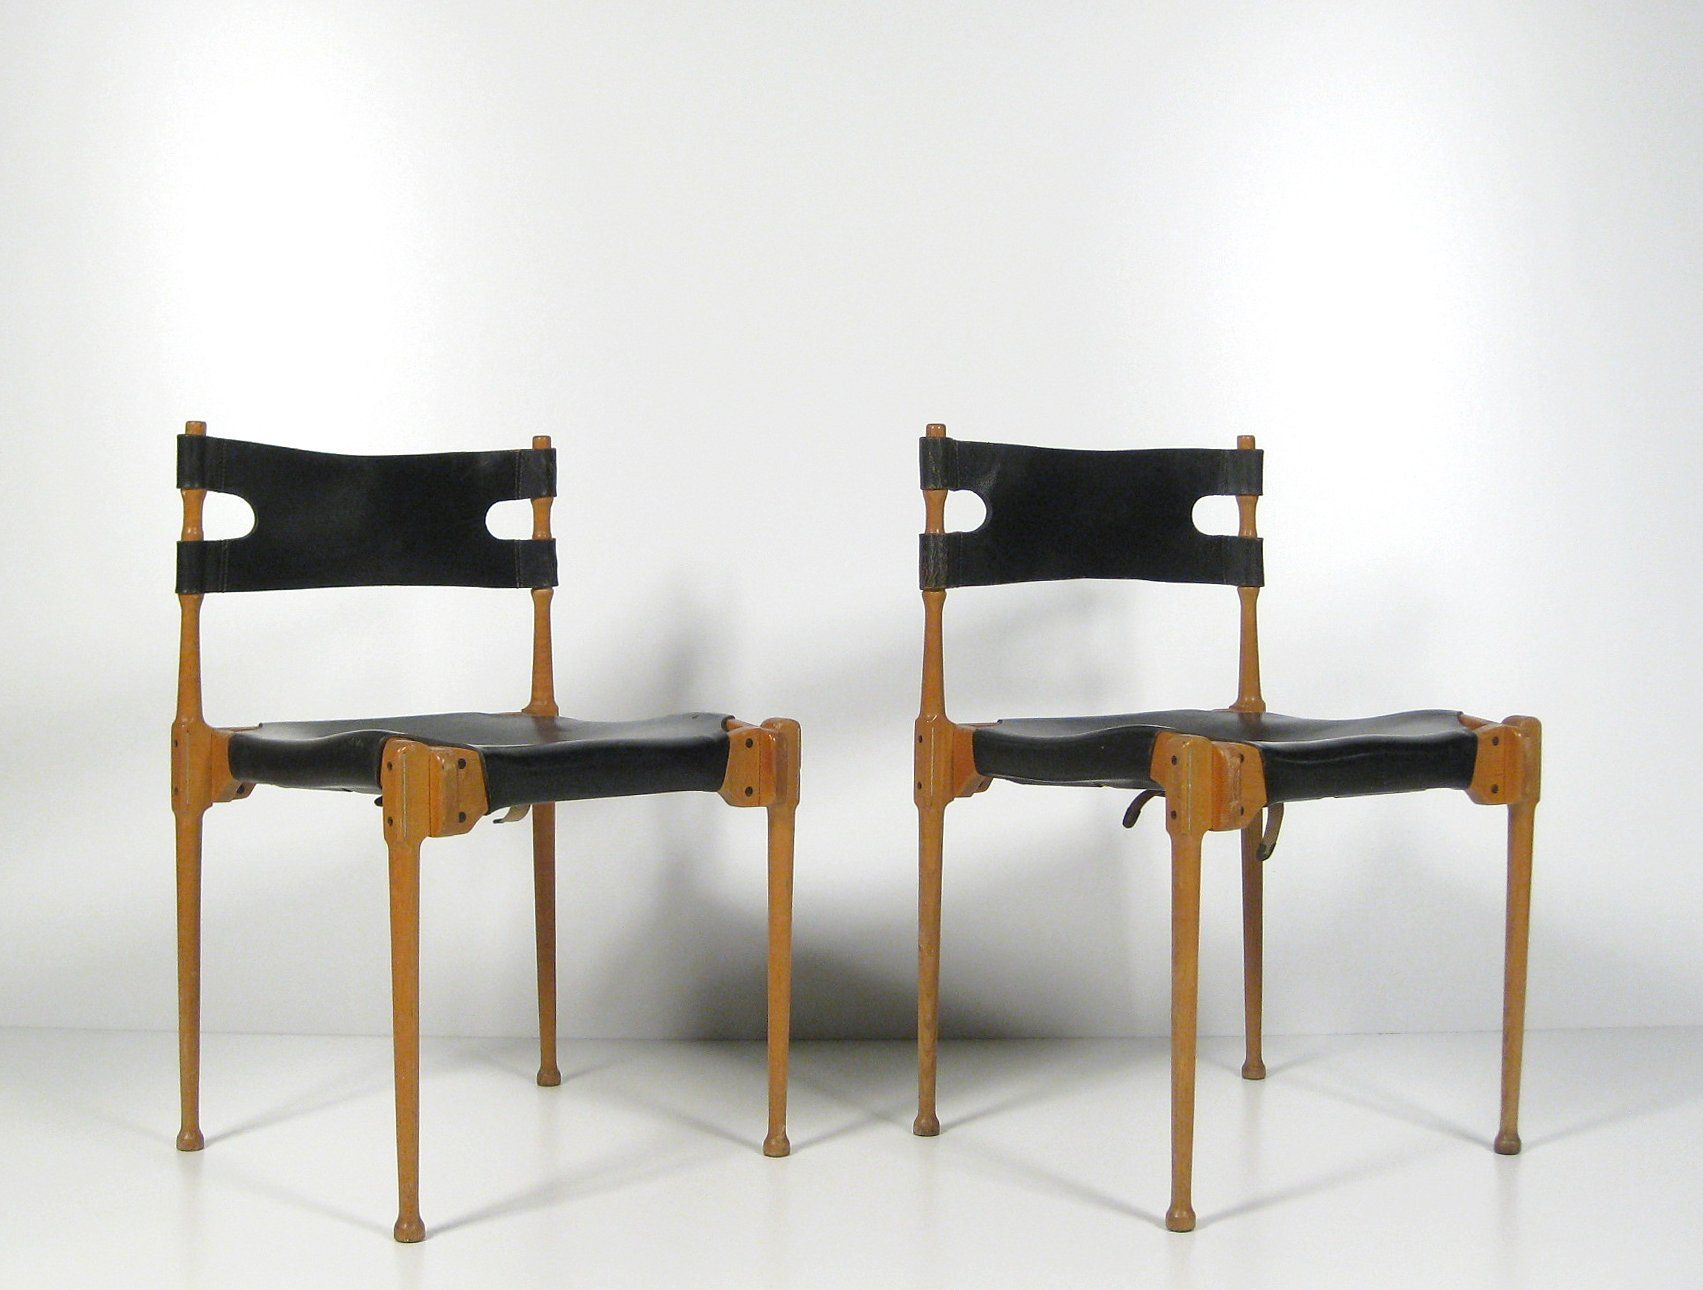 Ideal Frei Otto chairs model Montreal from Karl Fr scher u Co Germany